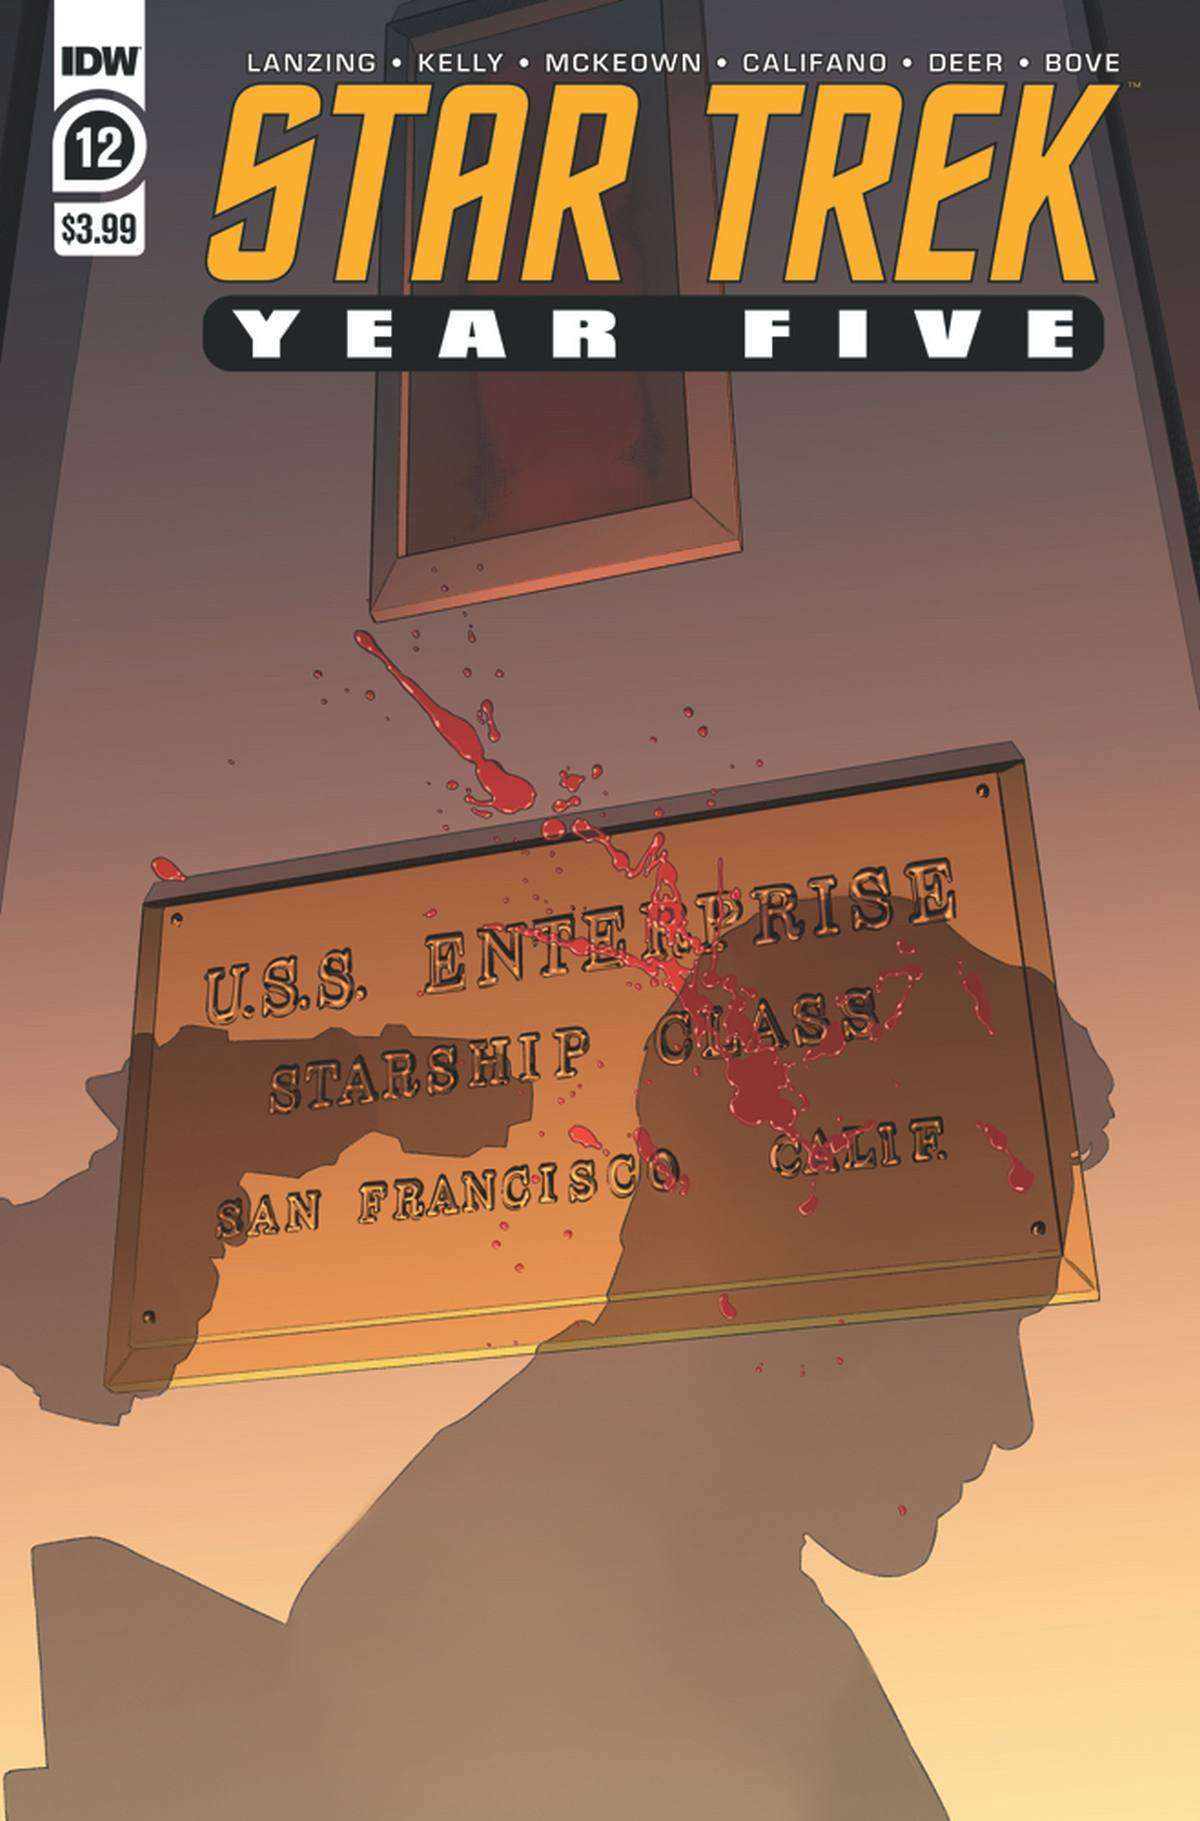 ST_YearFive12-cover